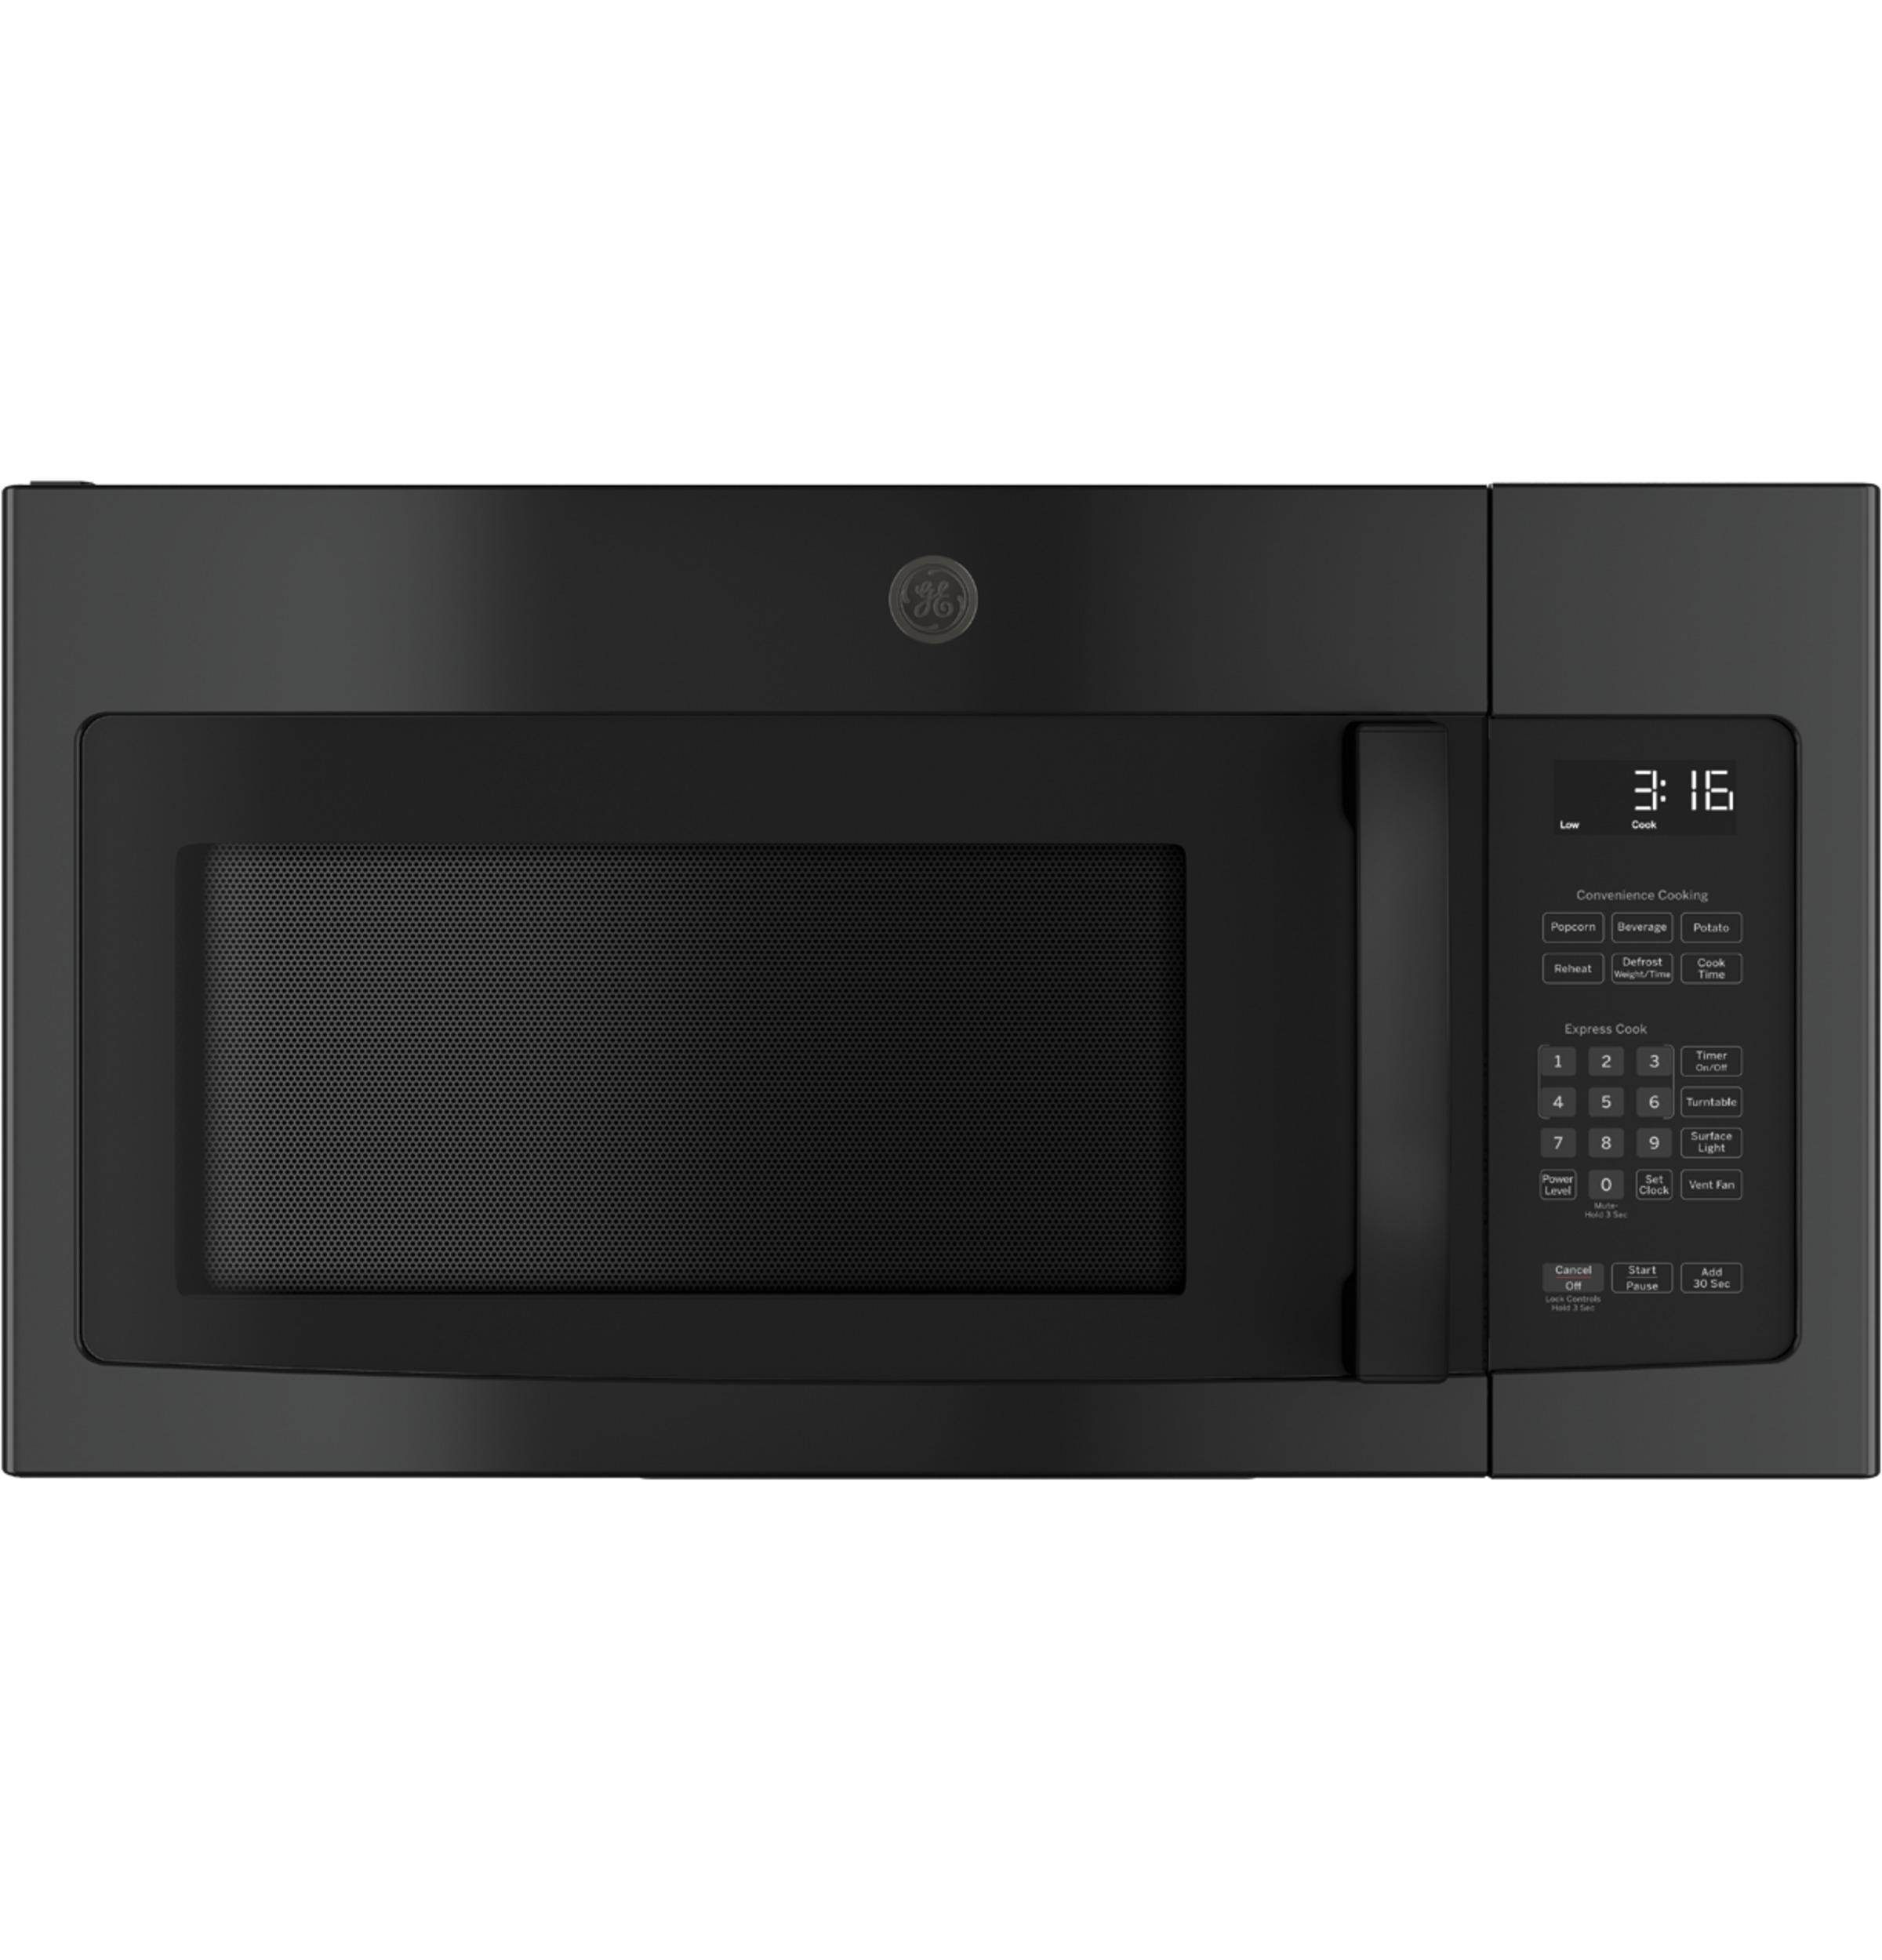 General Electric Ge R 1 6 Cu Ft Over The Range